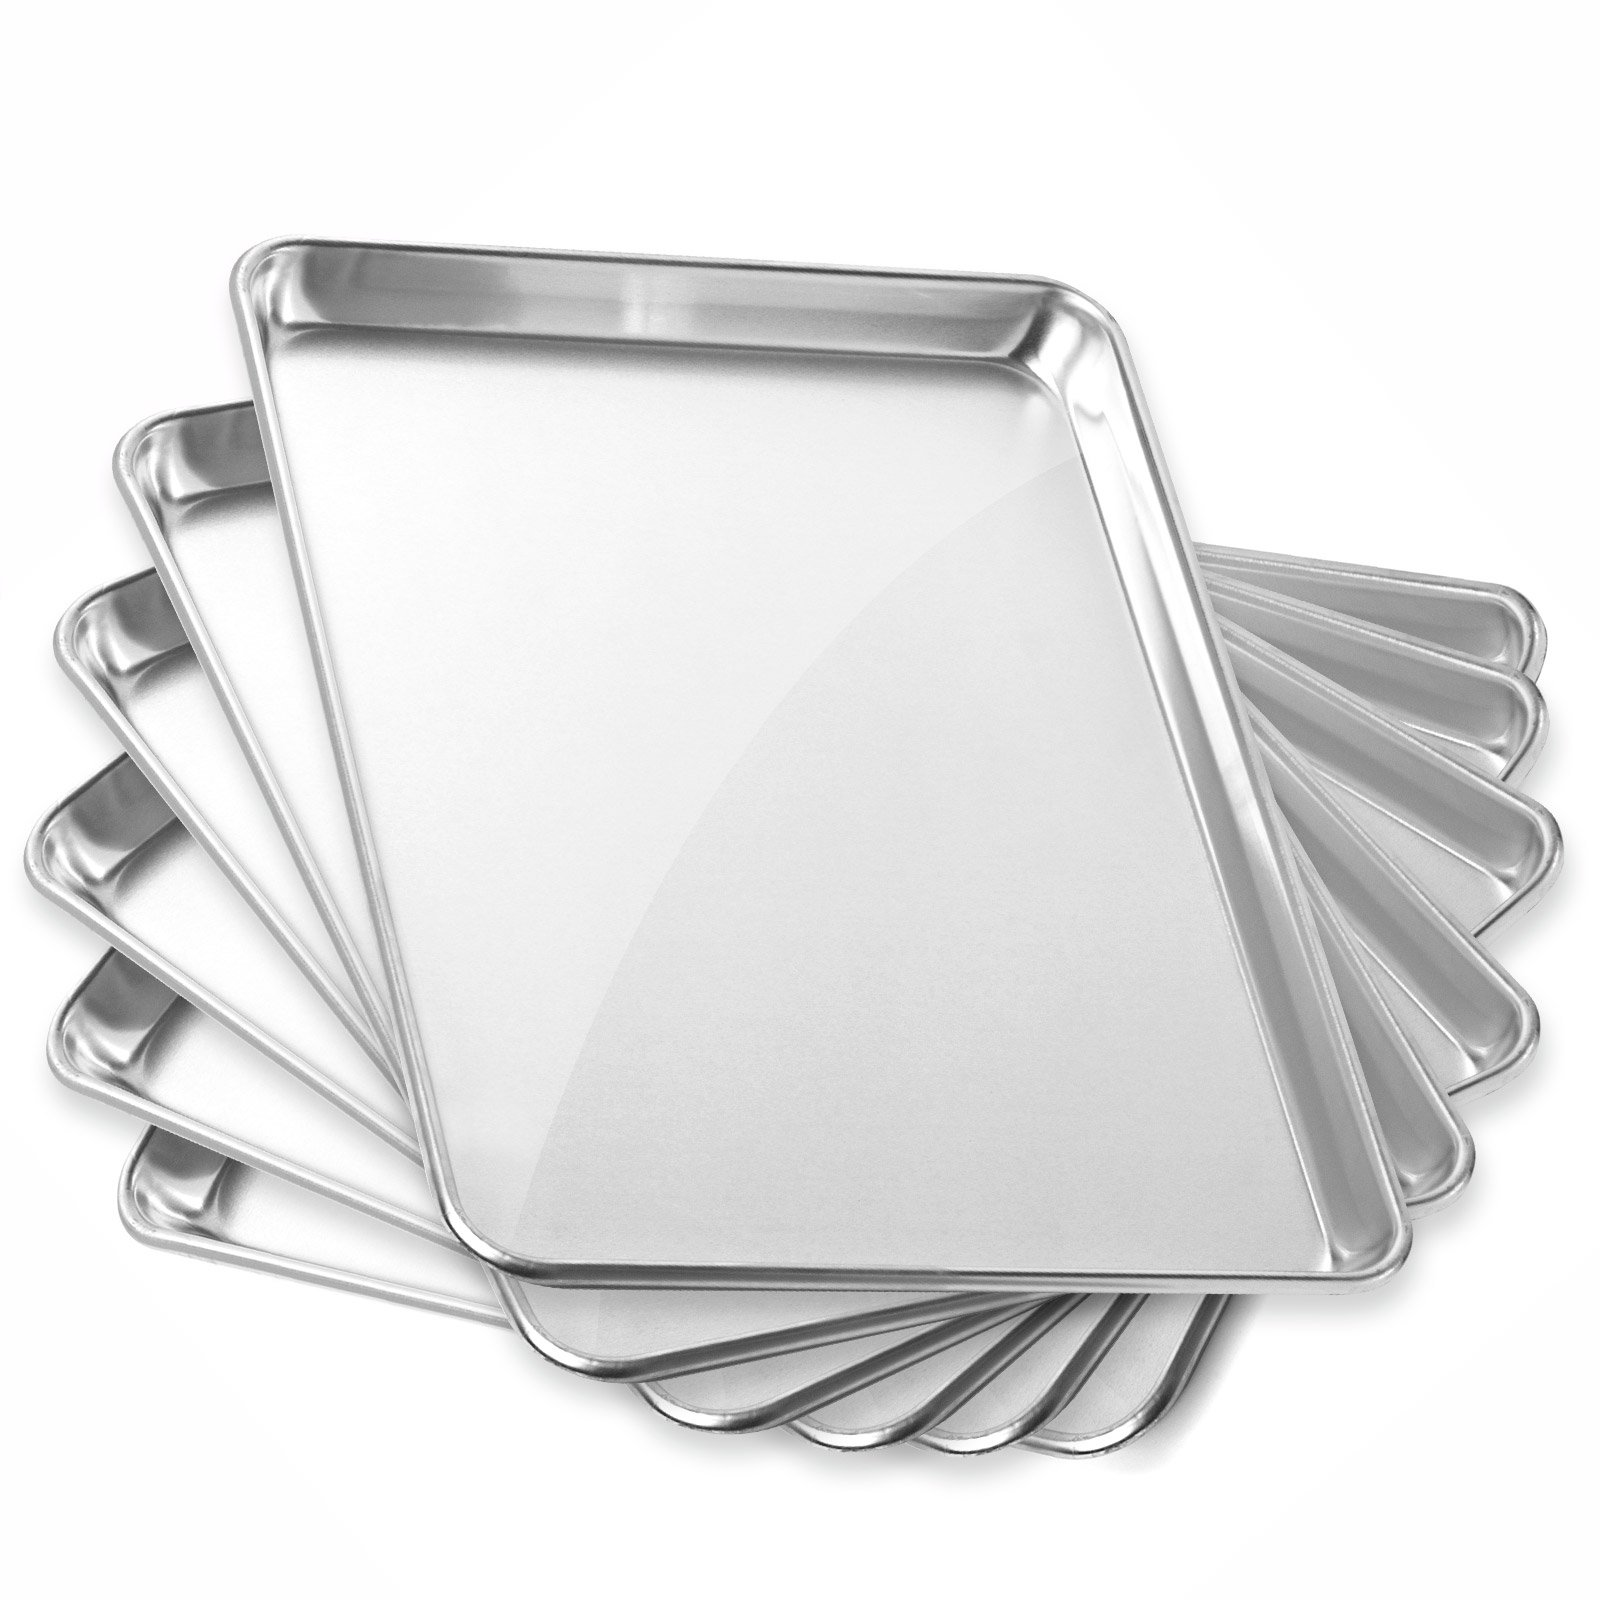 Gridmann 13'' x 18'' Commercial Grade Aluminium Cookie Sheet Baking Tray Jelly Roll Pan Half Sheet - 6 Pans